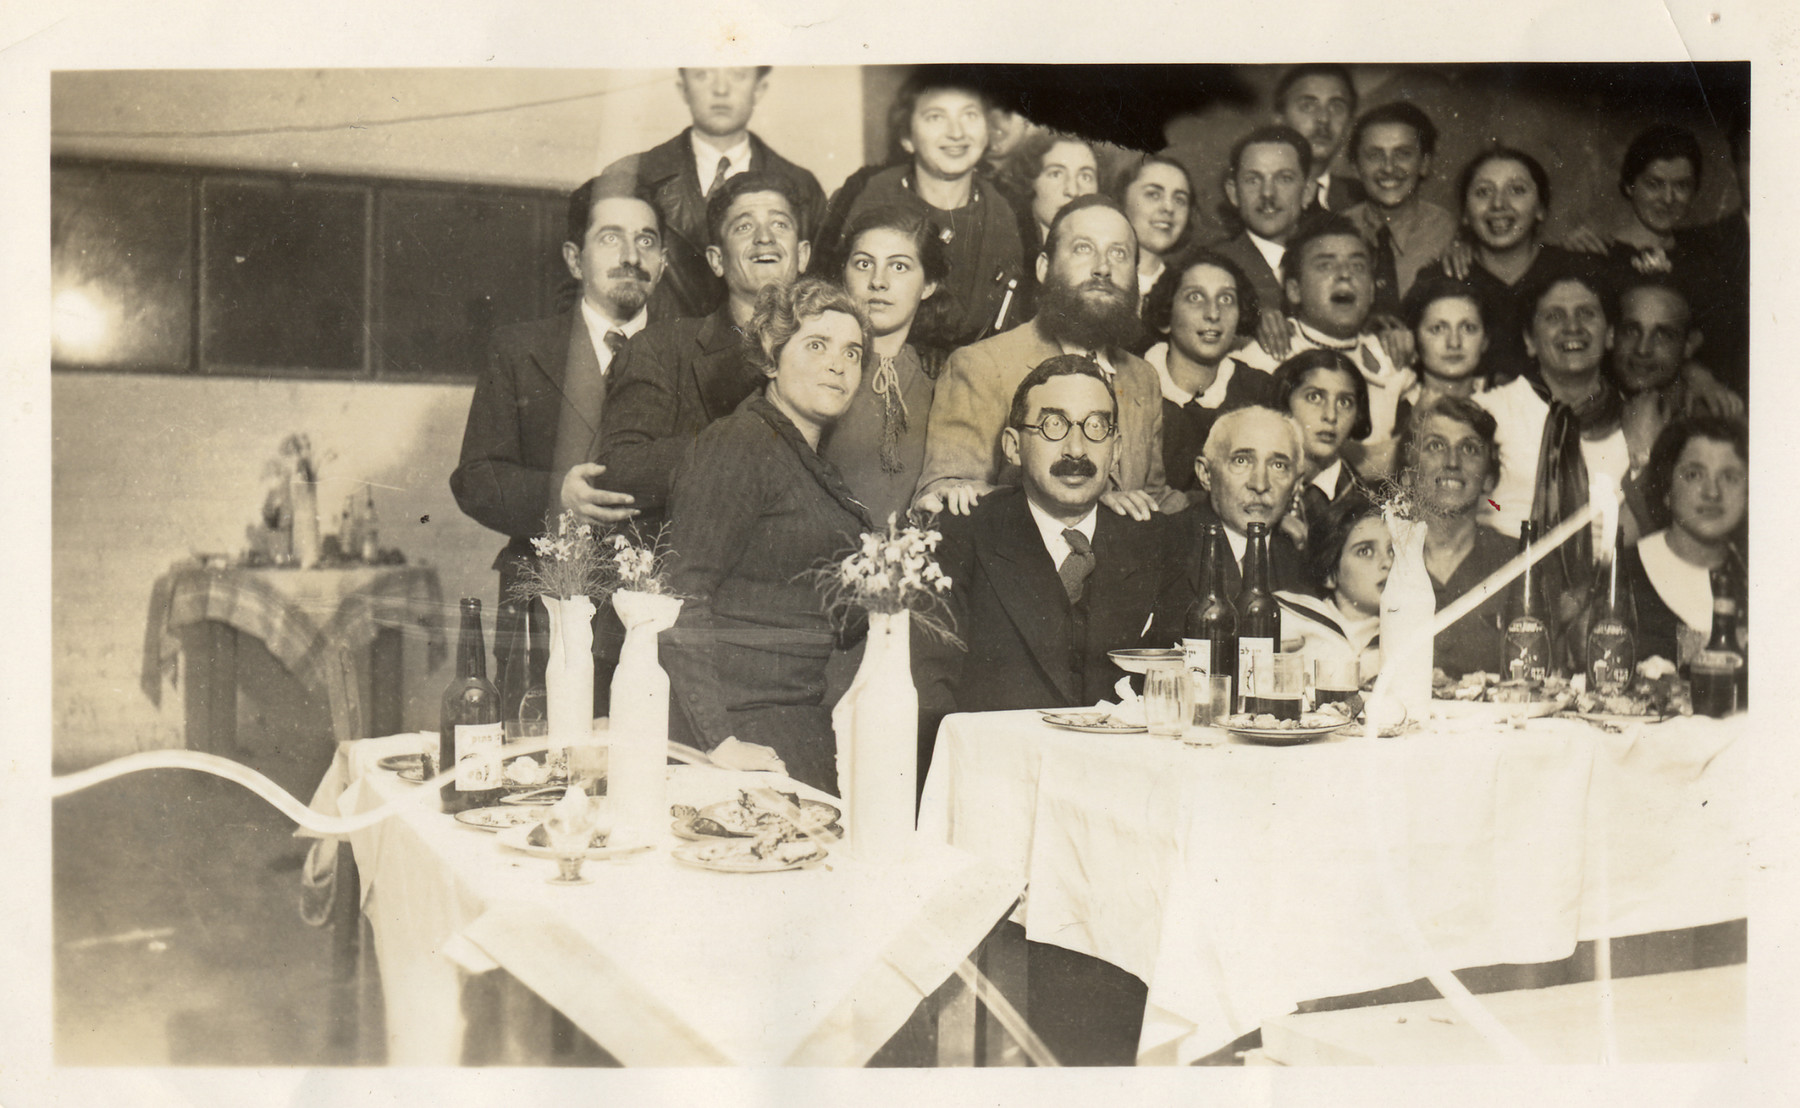 Group portrait of the employees of the Bialer textile factory attending a Passover seder together.  Aharon Bialer is standing on the far left (third row).  Rachel Bialer is seated second from the right.  Standing in the second row are Tonia Bialer (third from left) and Noemi Bialer (fourth from right).